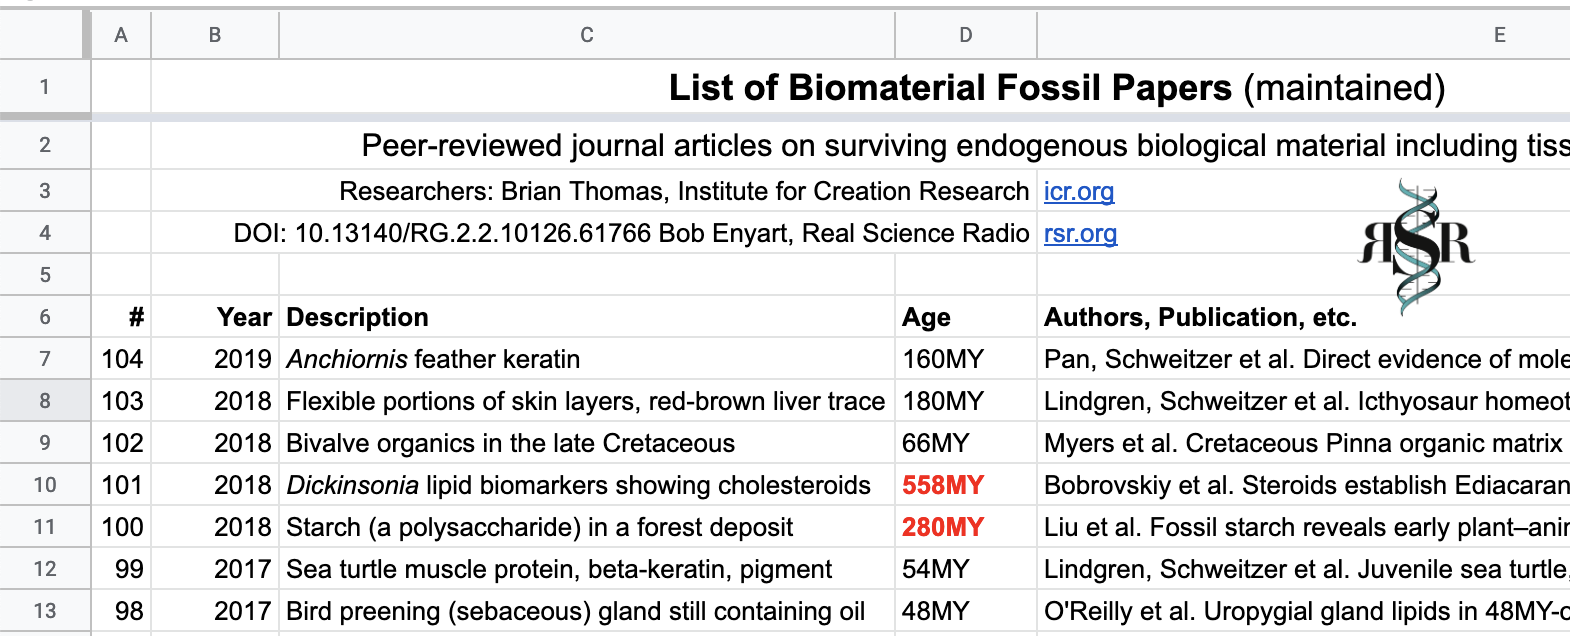 Biomaterial fossil list screenshot 2/16/19